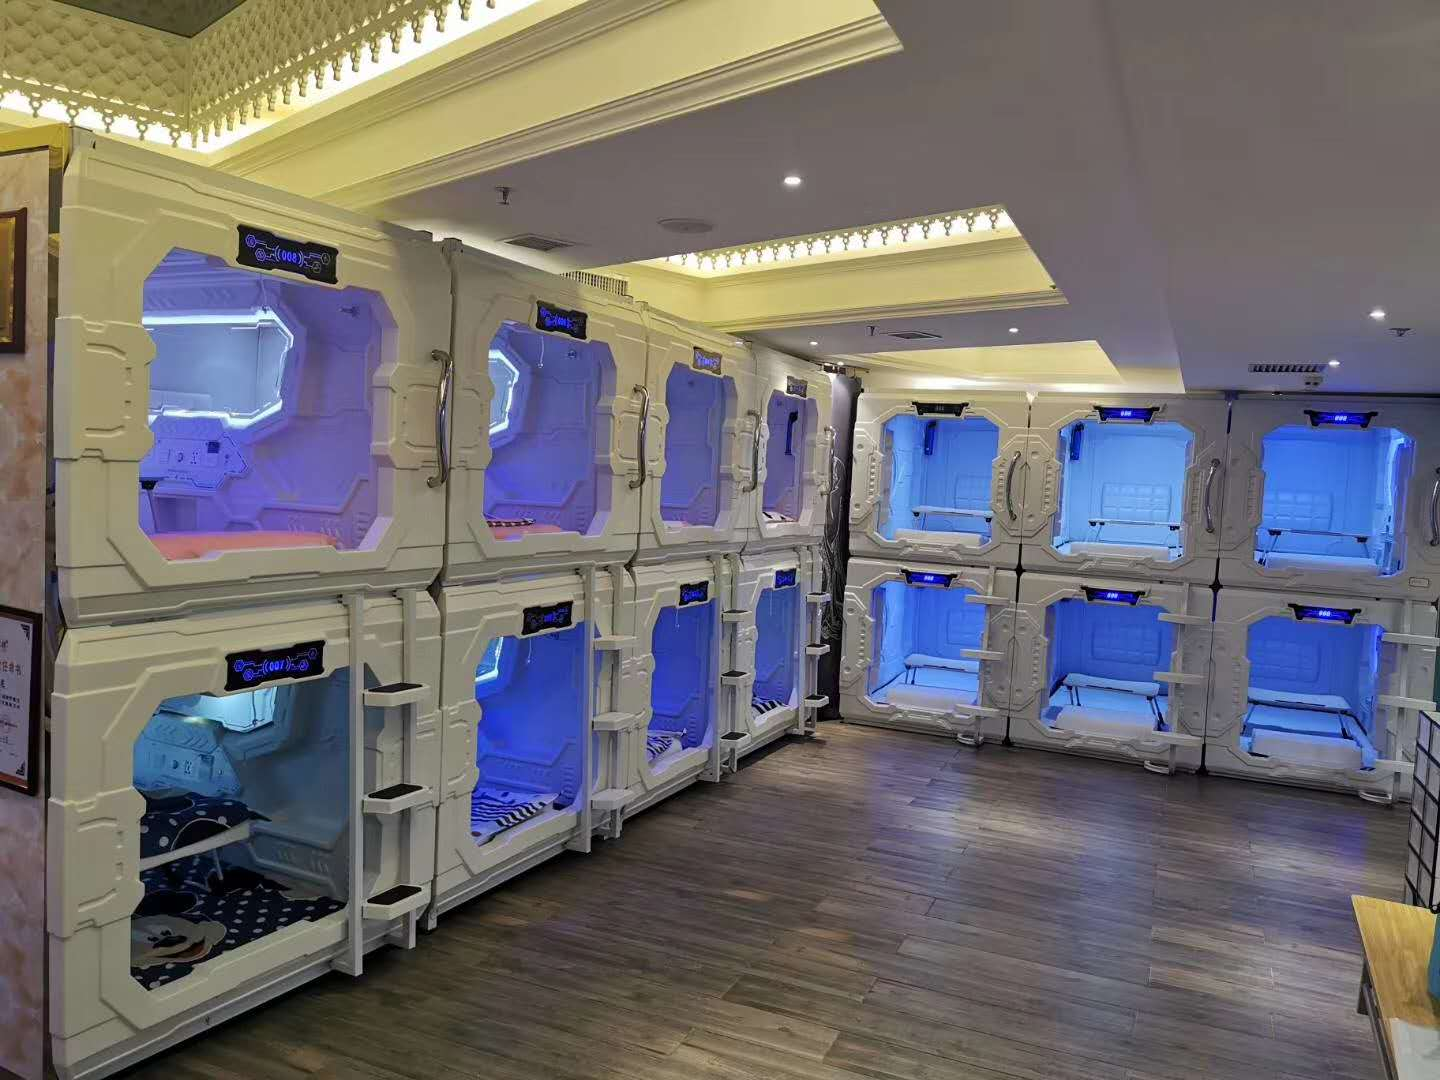 CAPSULE HOTEL/CAPSULE BED/SLEEP BOX STARSDOVE-SDM-861 ROHS Certificated Capsule Hotel With Star International Hotel Experience